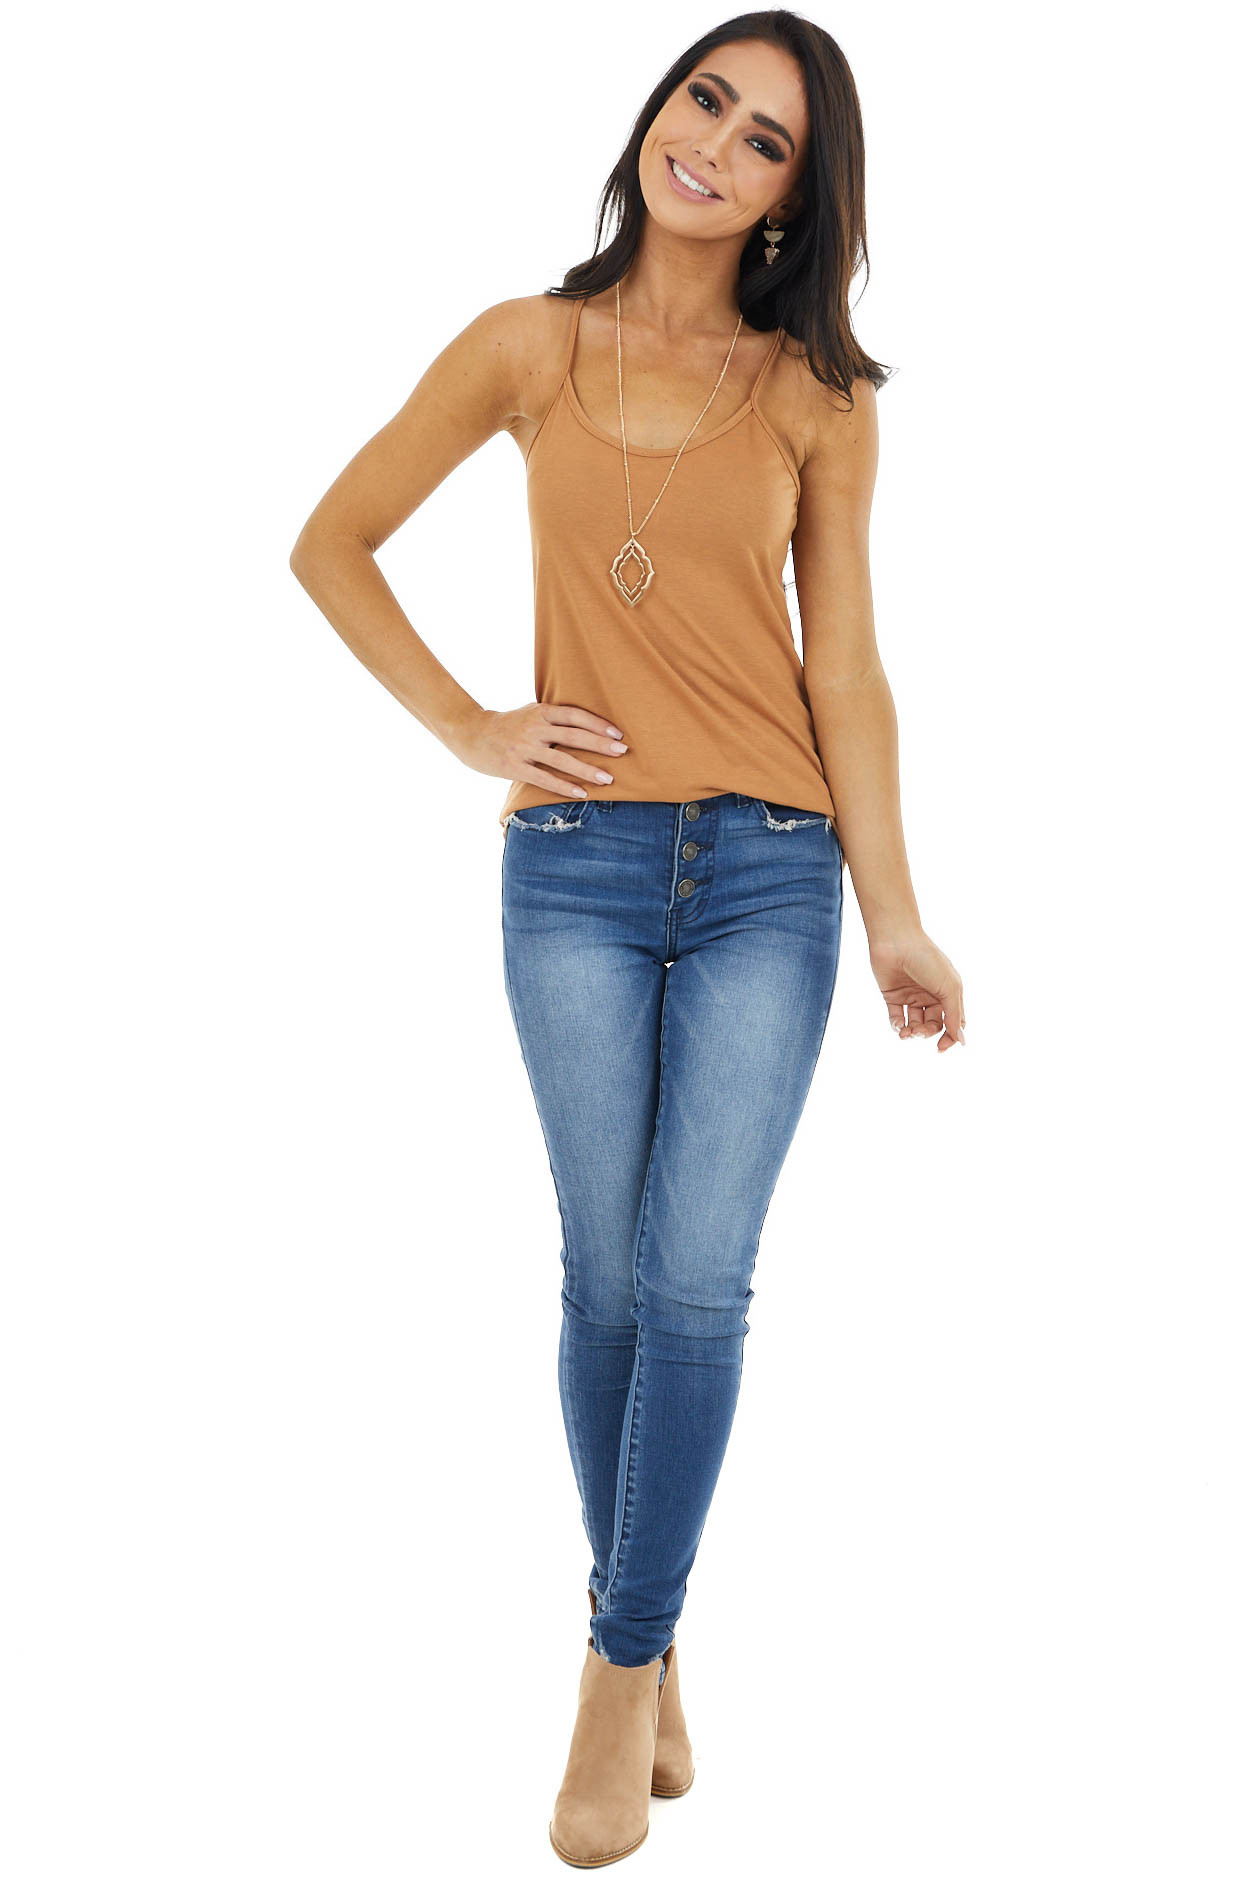 Camel Racerback Cami with Rounded Hemline and Neckline